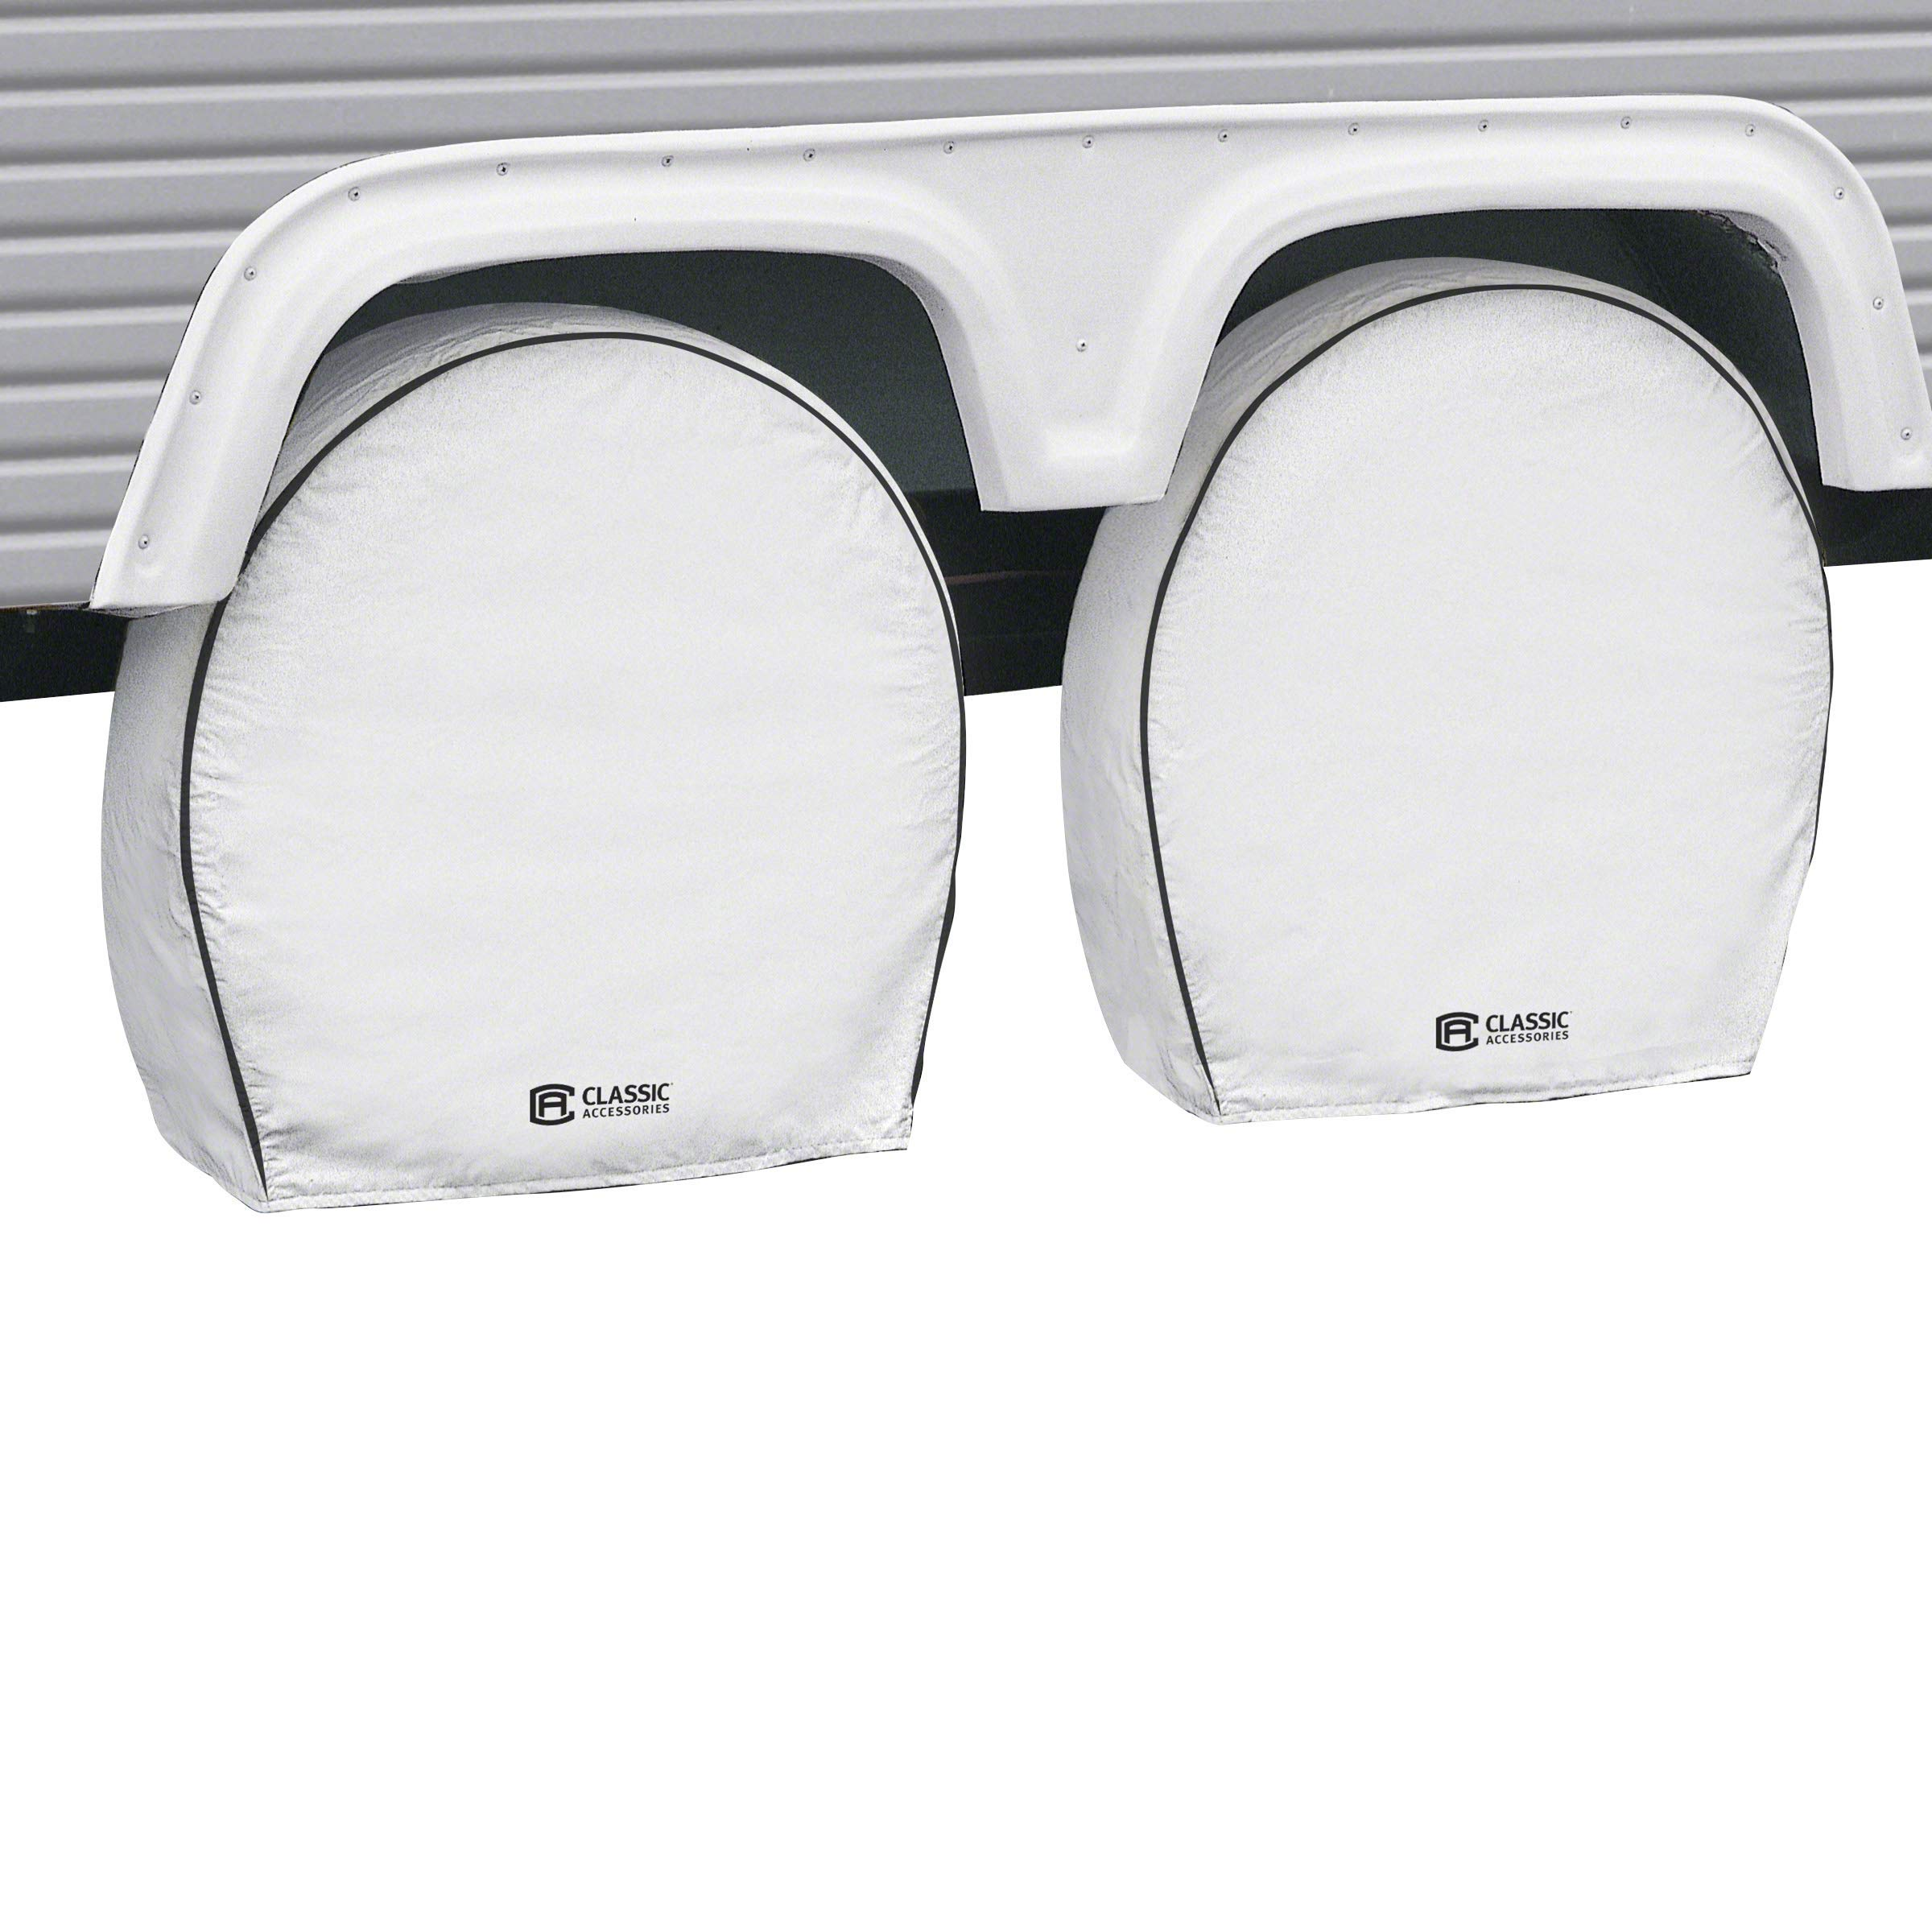 Classic Accessories OverDrive Deluxe RV & Trailer Wheel Cover, 4-Pack, White, (For 18'' - 21'' diameter tires, up to 6.75'' wide) (Renewed) by Classic Accessories